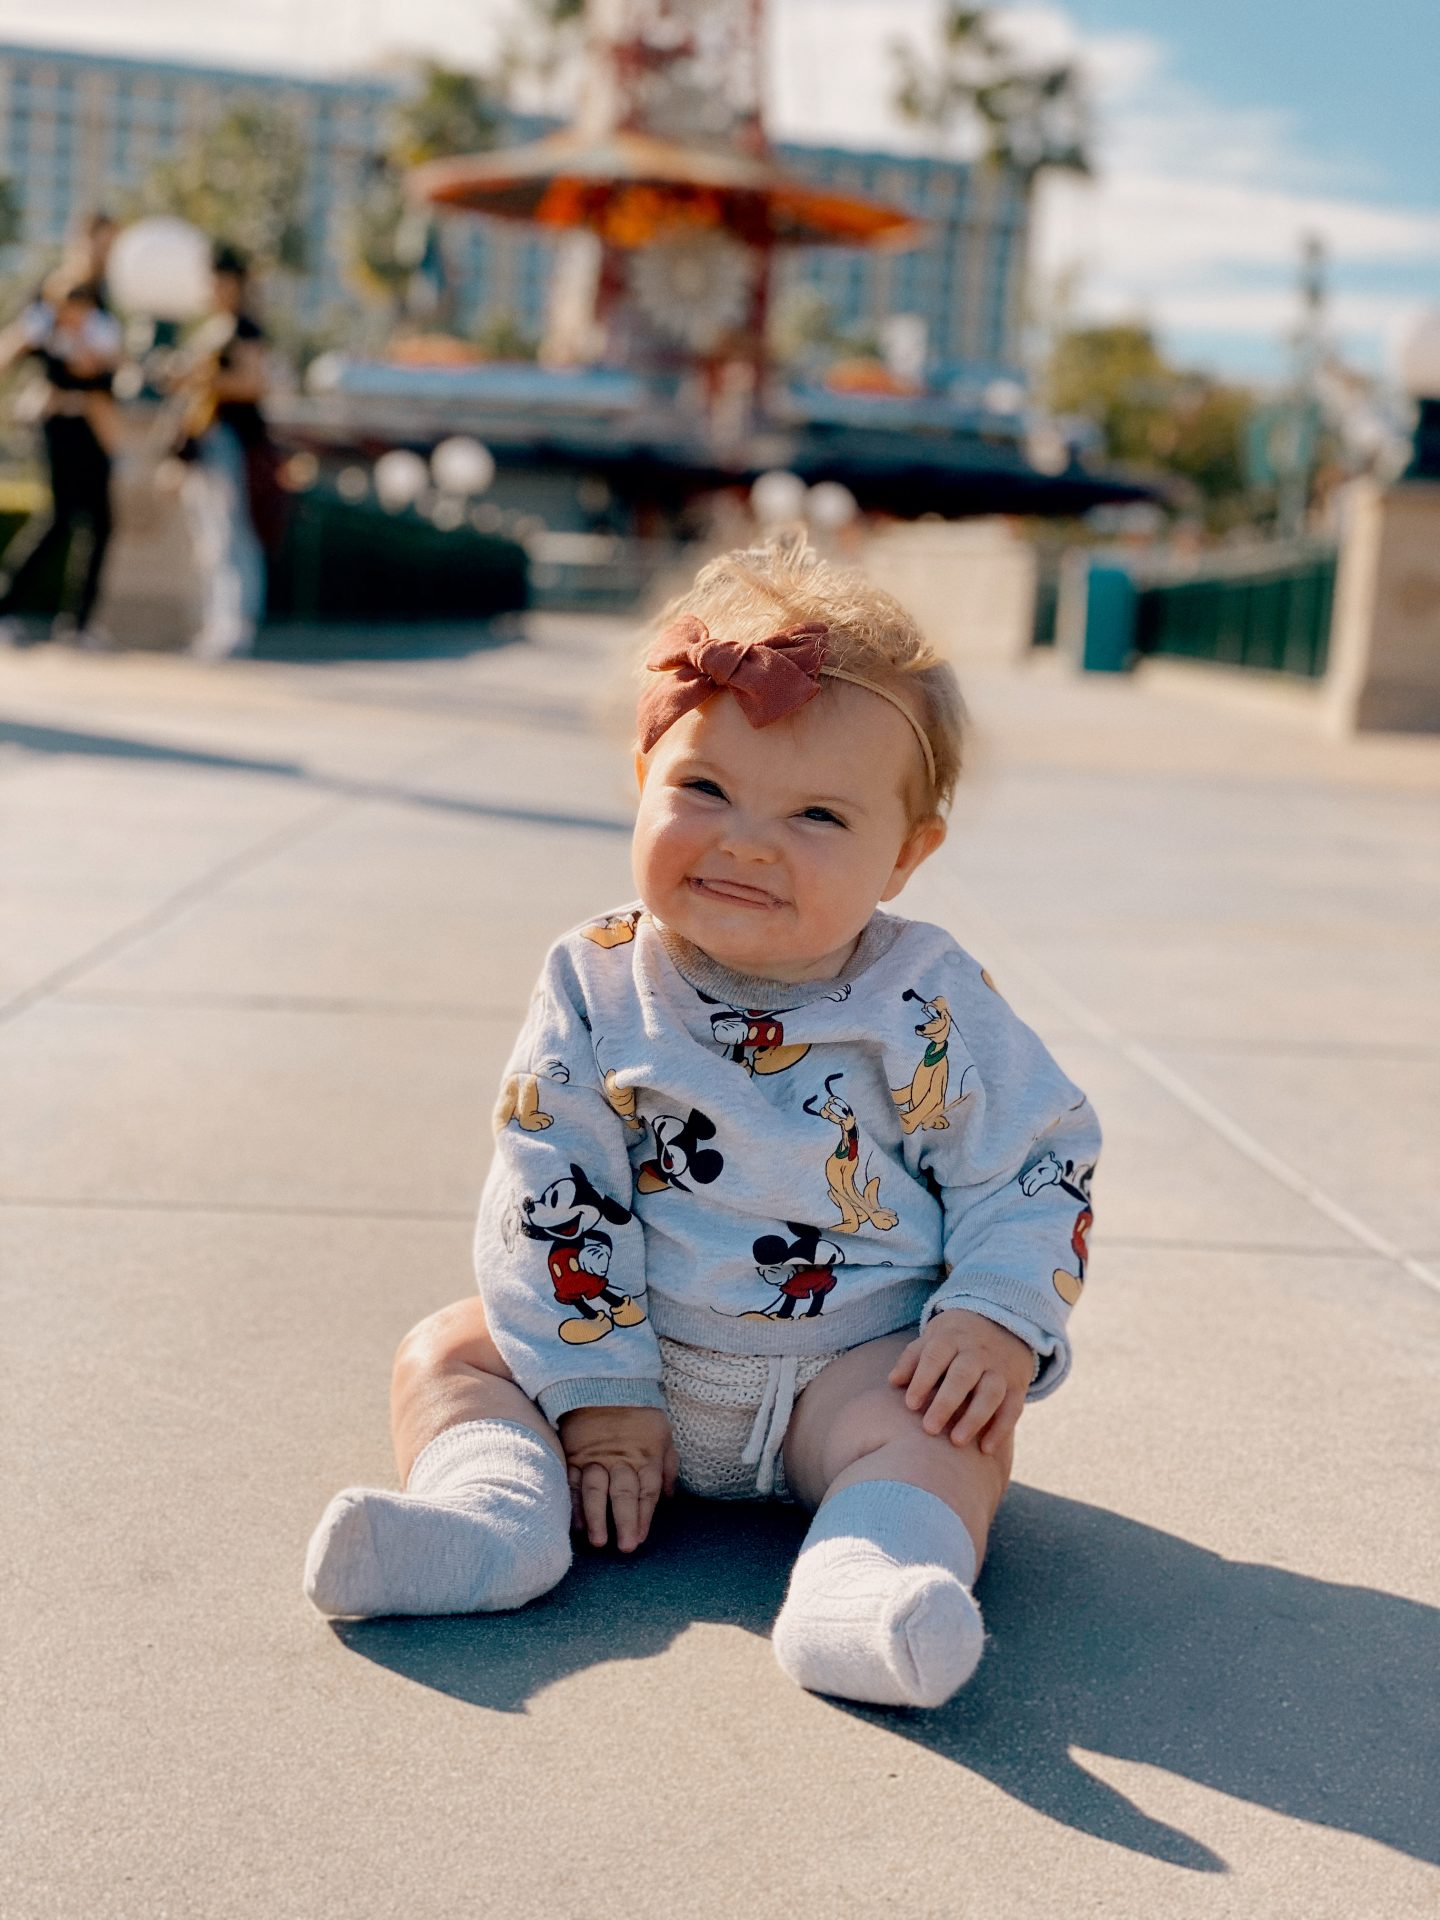 TOP 10 BEST DISNEYLAND TIPS FOR YOUR FAMILY featured by top San Diego blog, Navy Grace | Disneyland Tips by popular San Diego lifestyle blog, Navy Grace: image of a baby girl sitting on the ground at Disneyland and wearing a Mickey Mouse shirt.